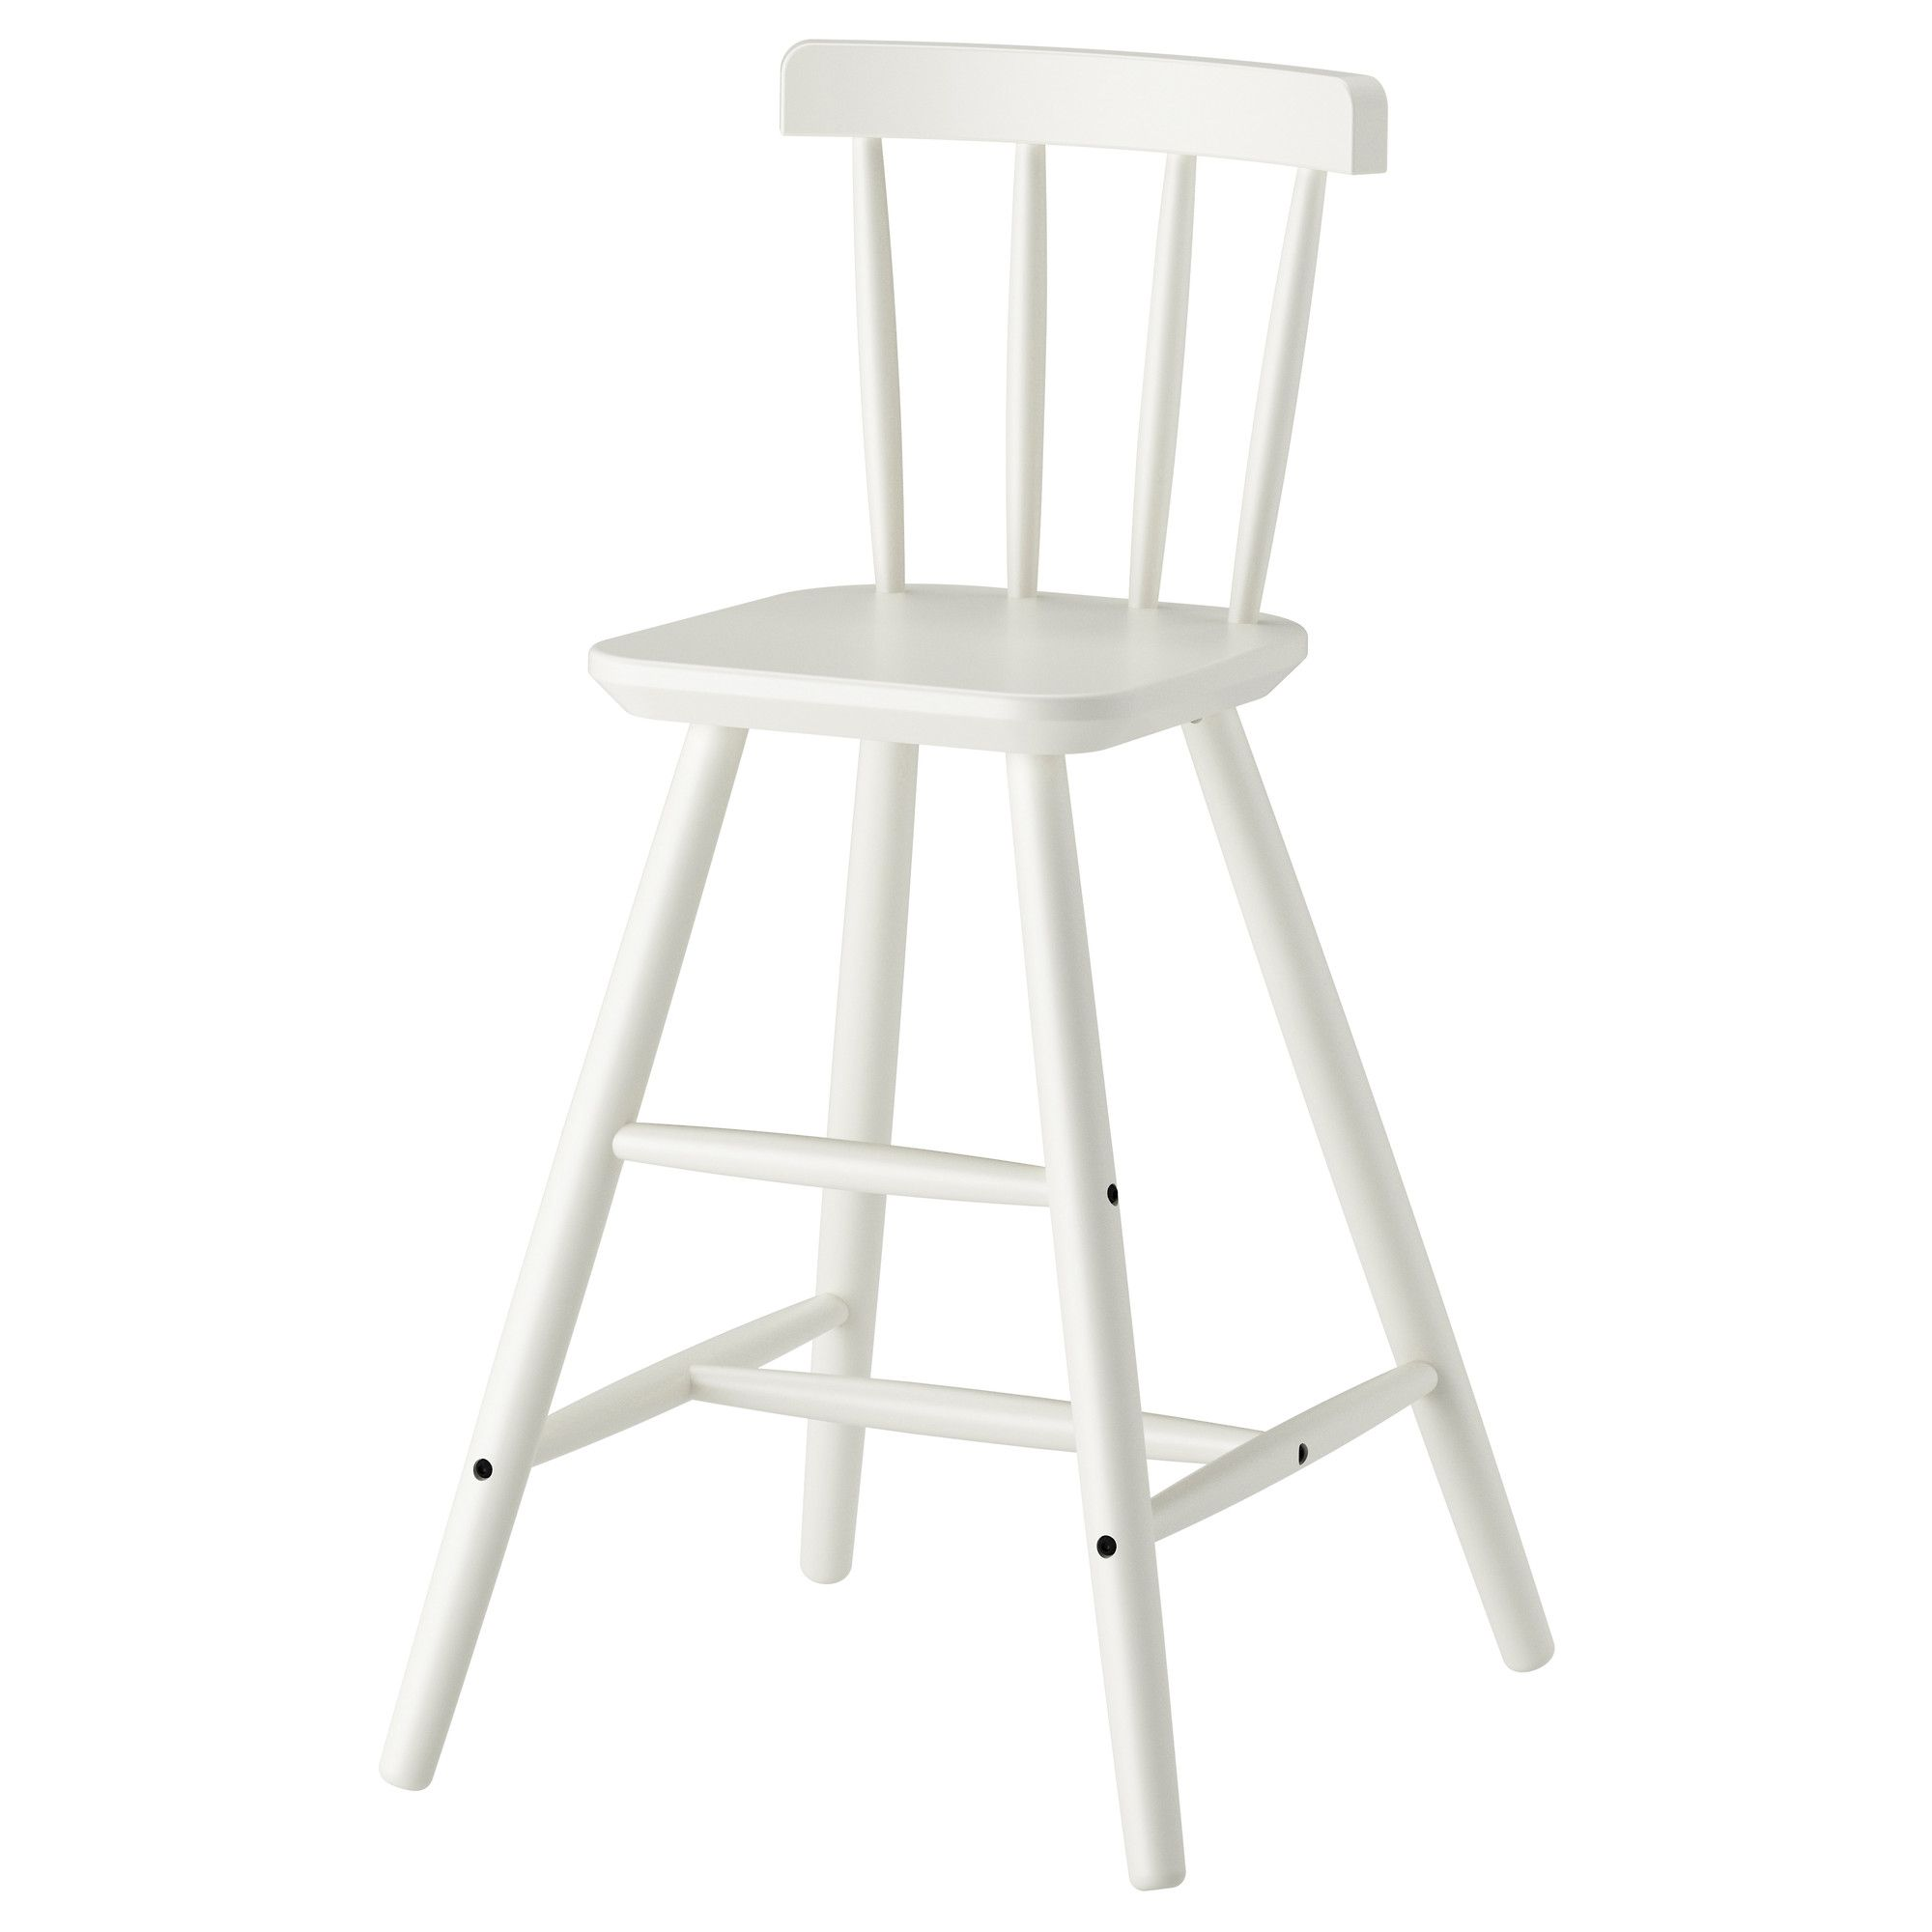 Sedia Junior Ikea Agam Junior Chair White For The Home Ikea Junior Chair Ikea